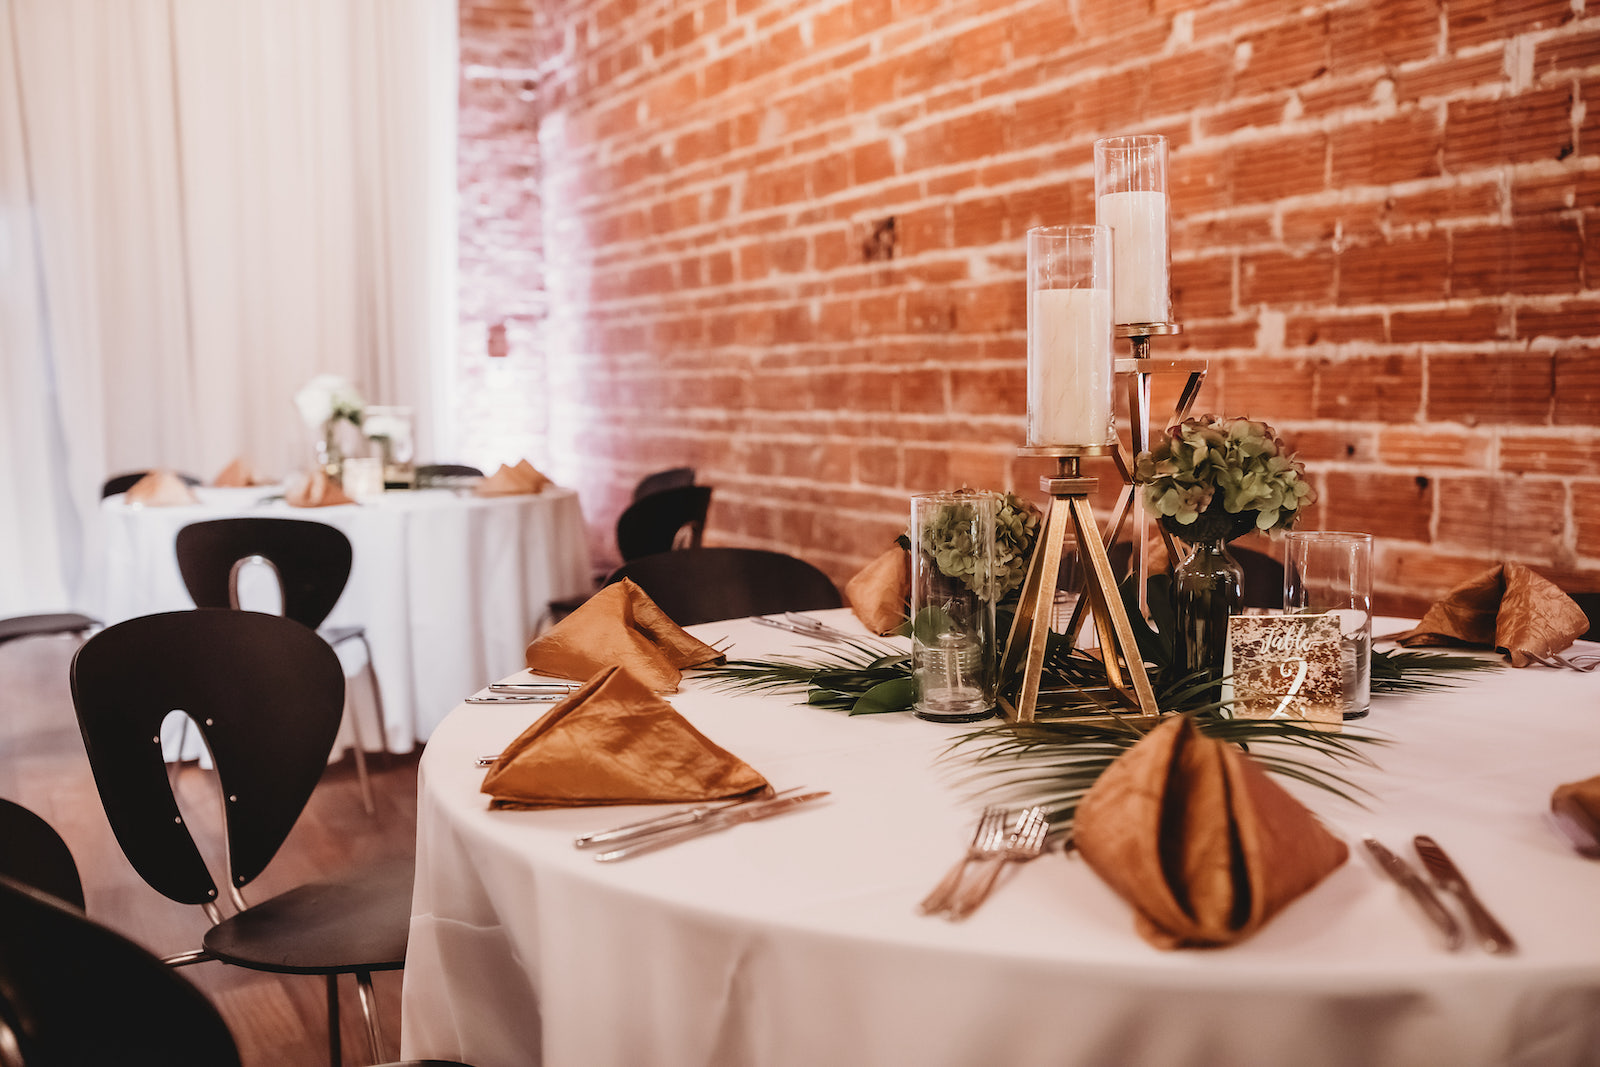 Modern Tropical Florida Wedding Reception And Decor Round Tables With Gold Napkin Linens Palm Leaf Greenery And Low Floral Centerpieces With Geometric Vase Exposed Red Brick Wall Unique Tampa Bay Wedding